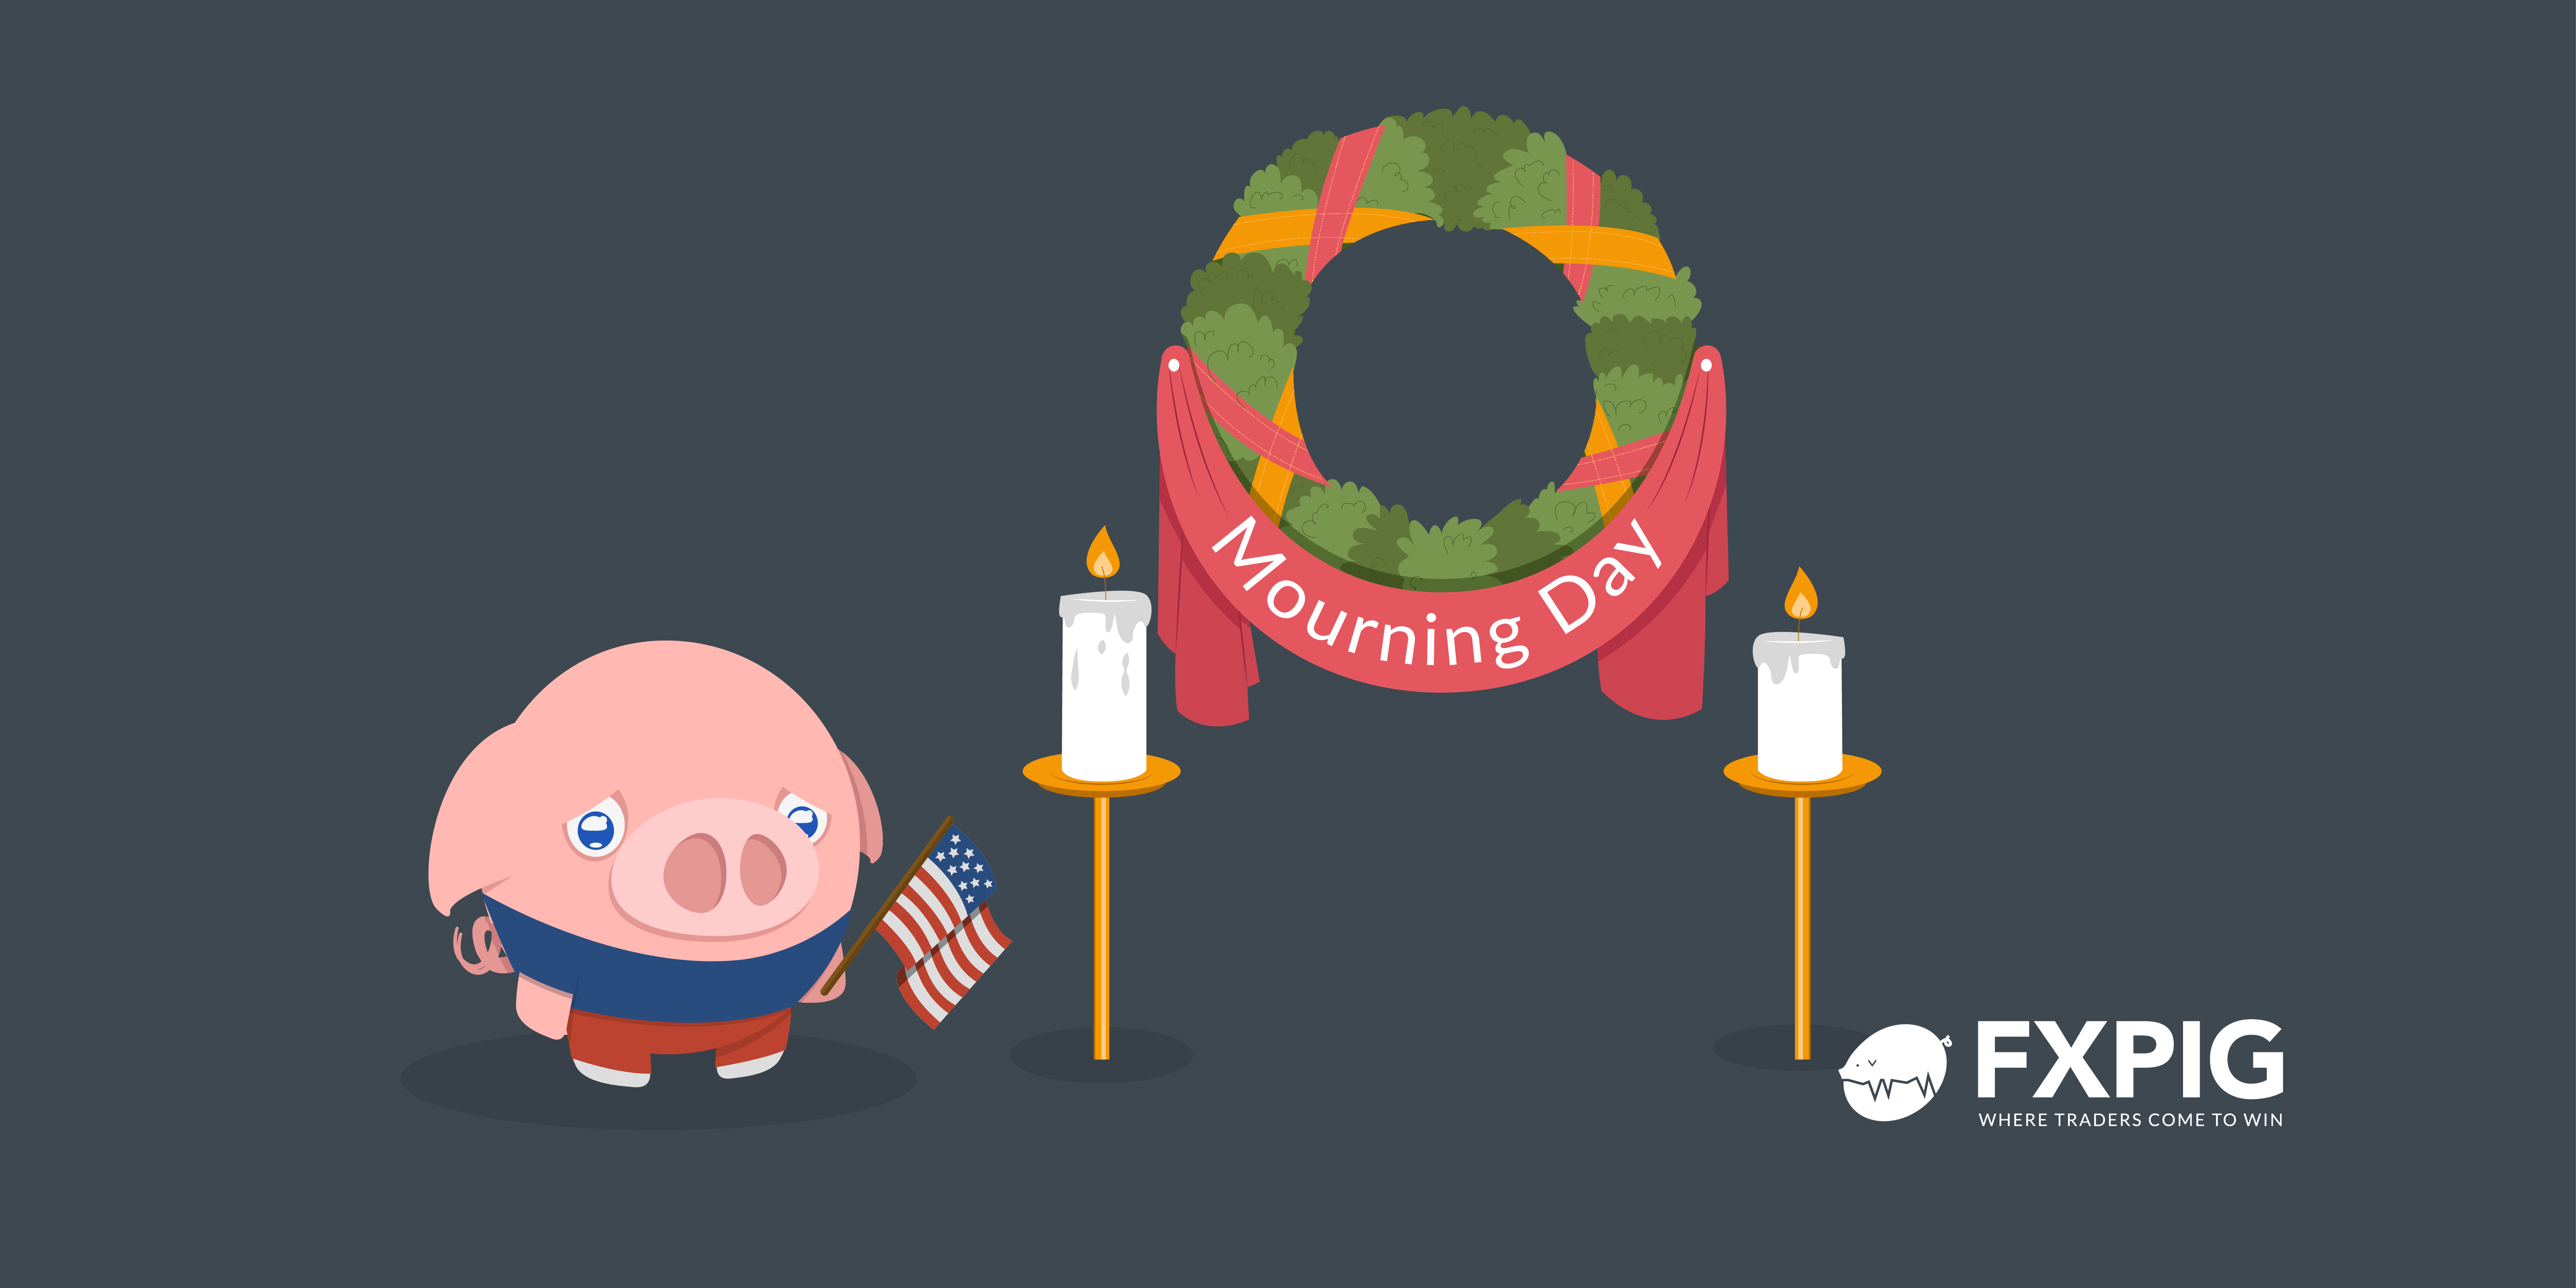 USA_Mourning Day_FXPIG